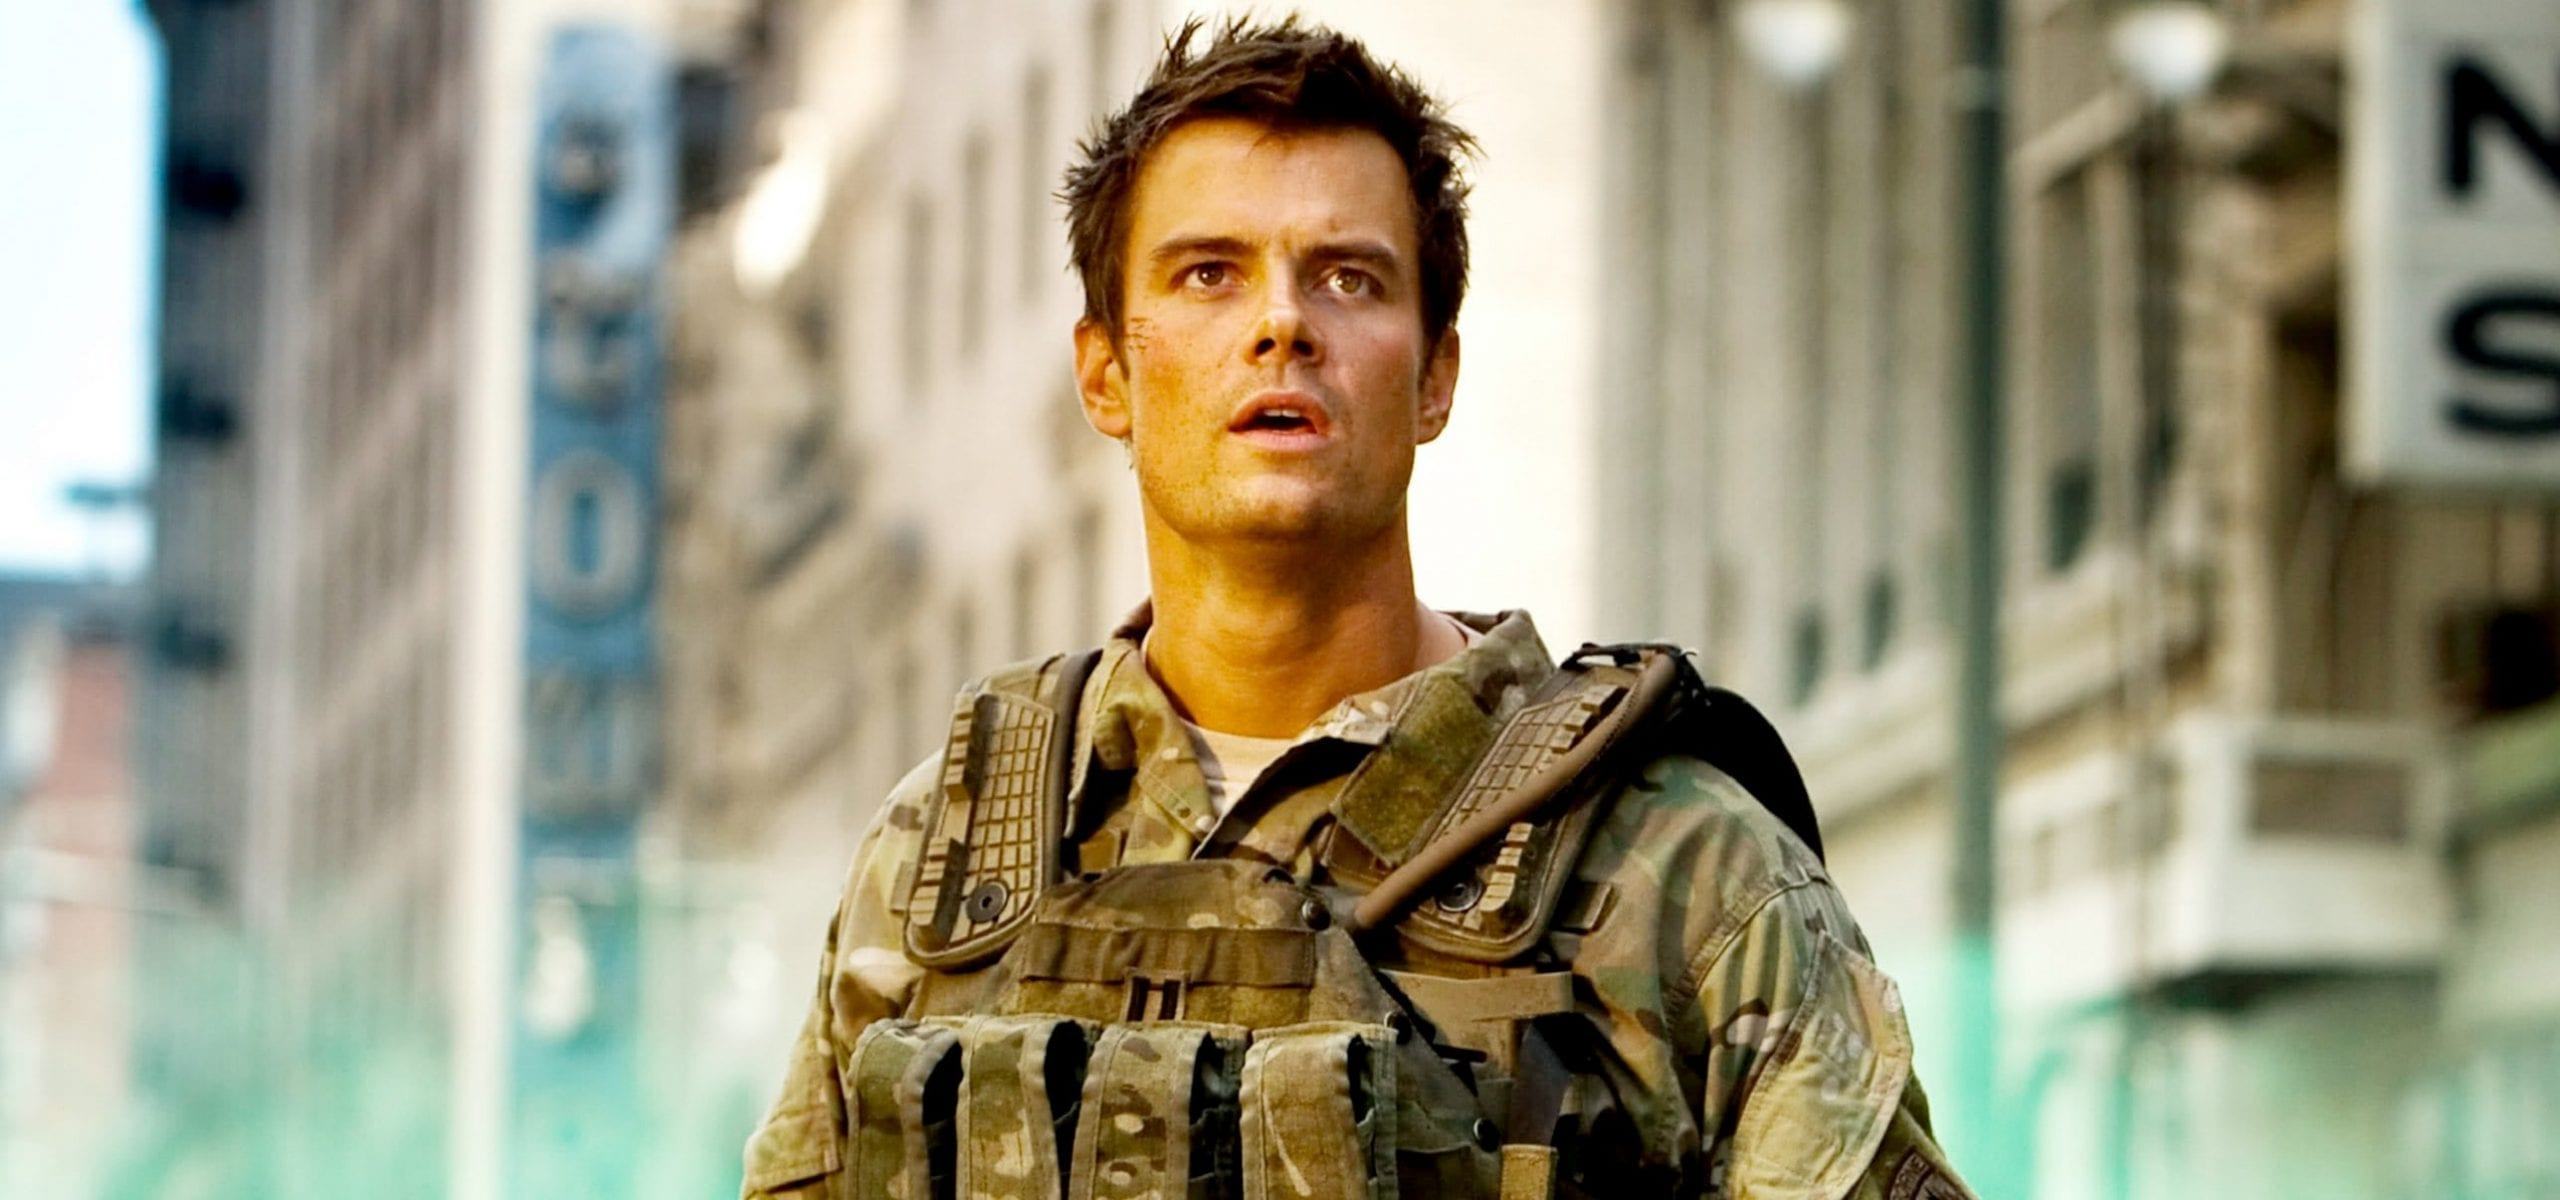 Who Is Josh Duhamel Dating? Look Into The Famous Transformers Star's Dating Life